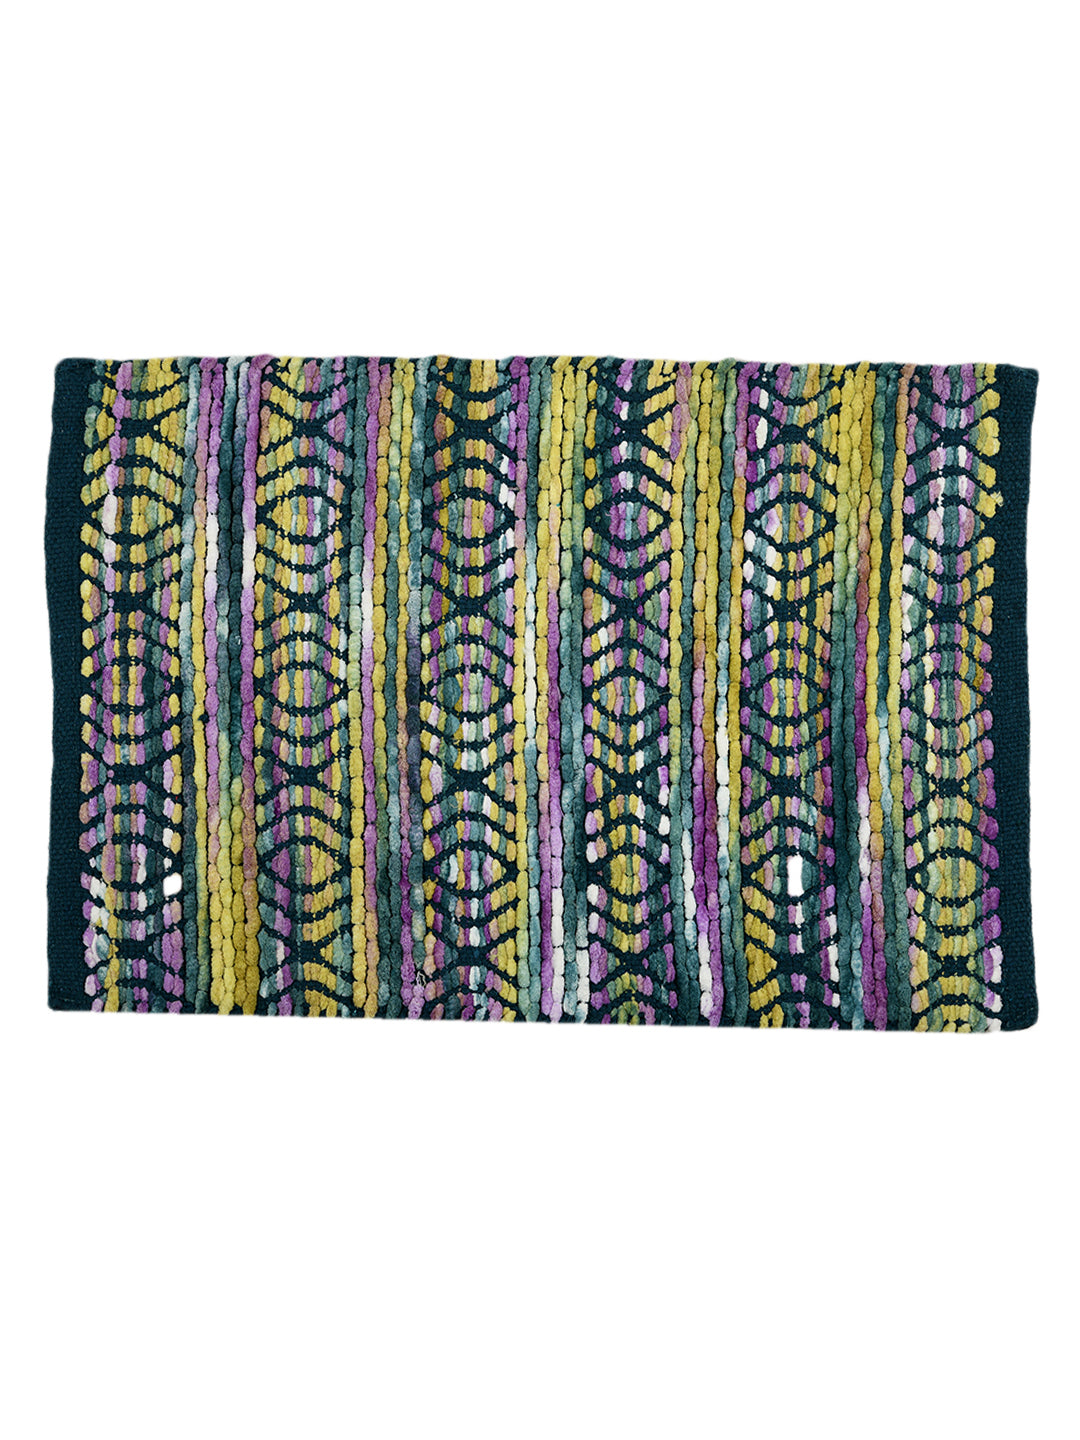 Abstract Handwoven Rugs (Set Of 2)